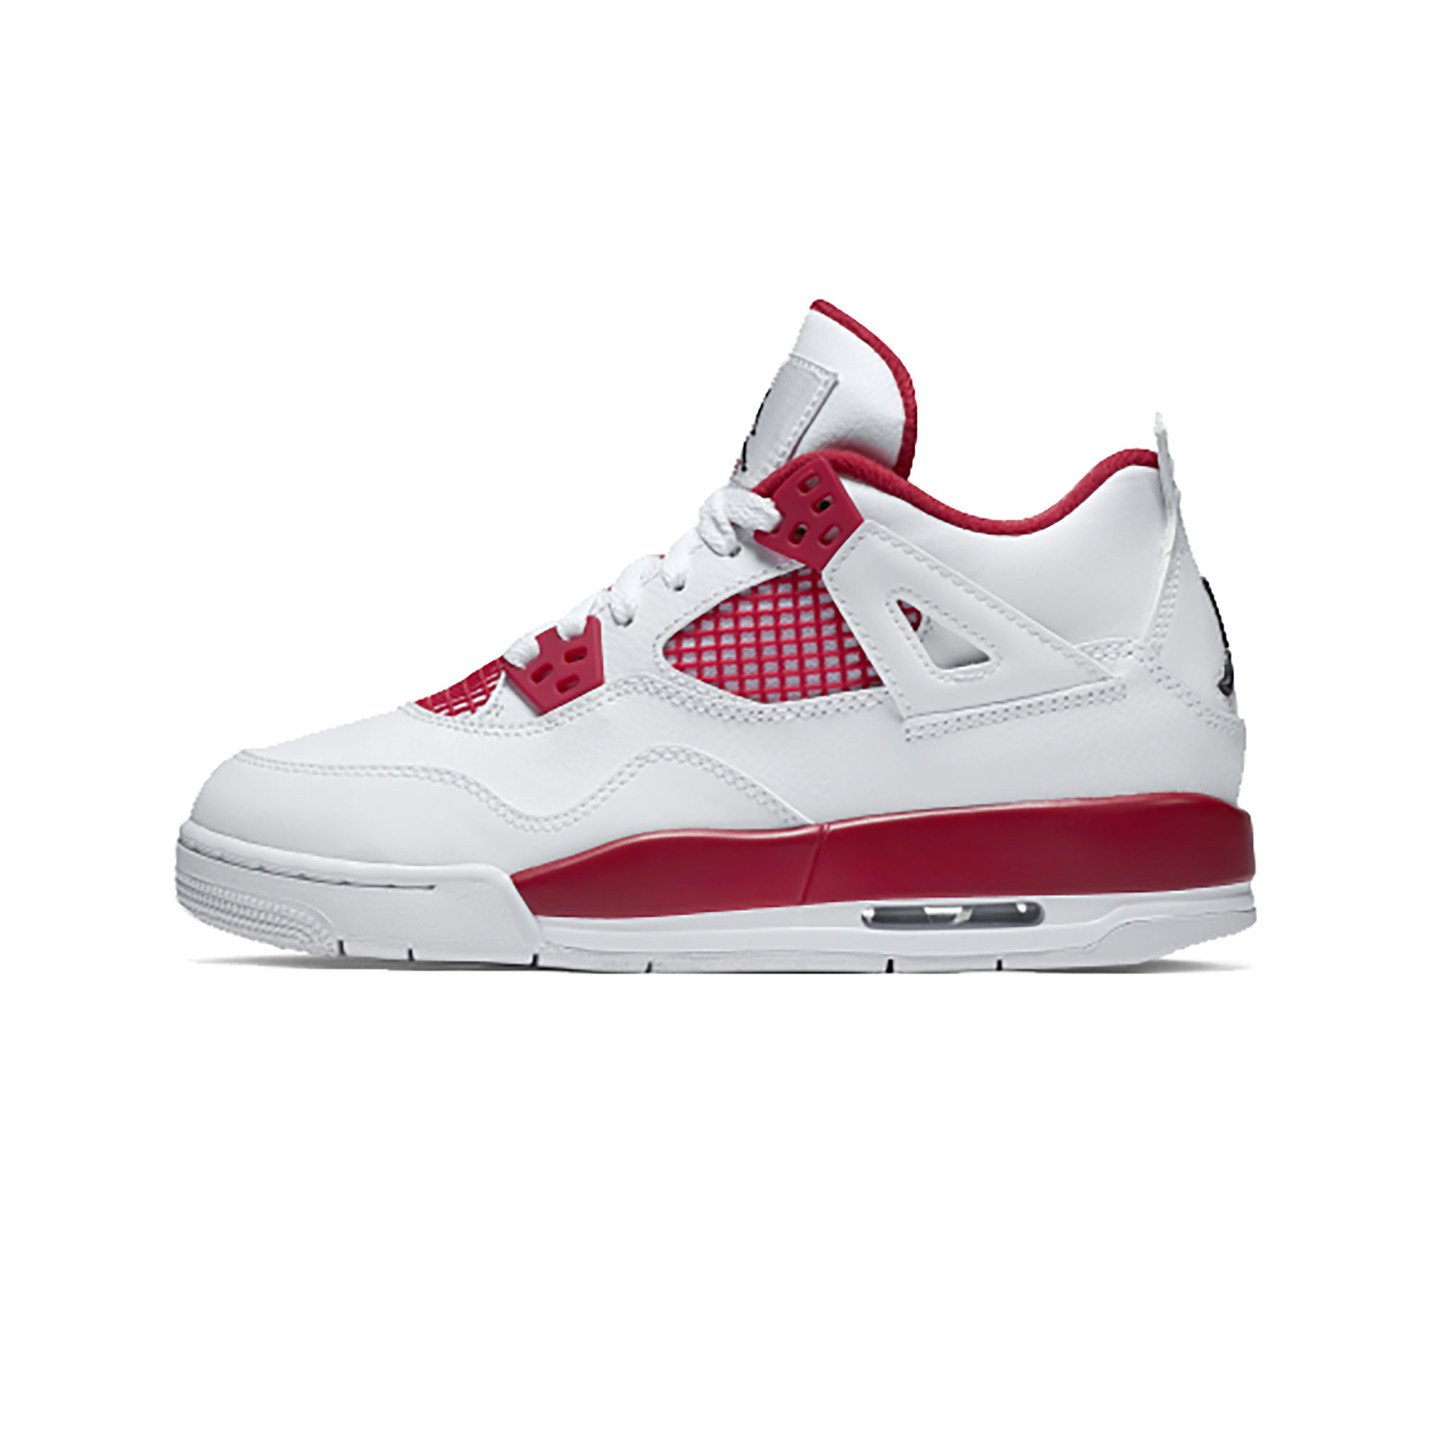 Jordan Air Jordan 4 Retro GS Alternate White / Gym Red / Black 408452-106-40